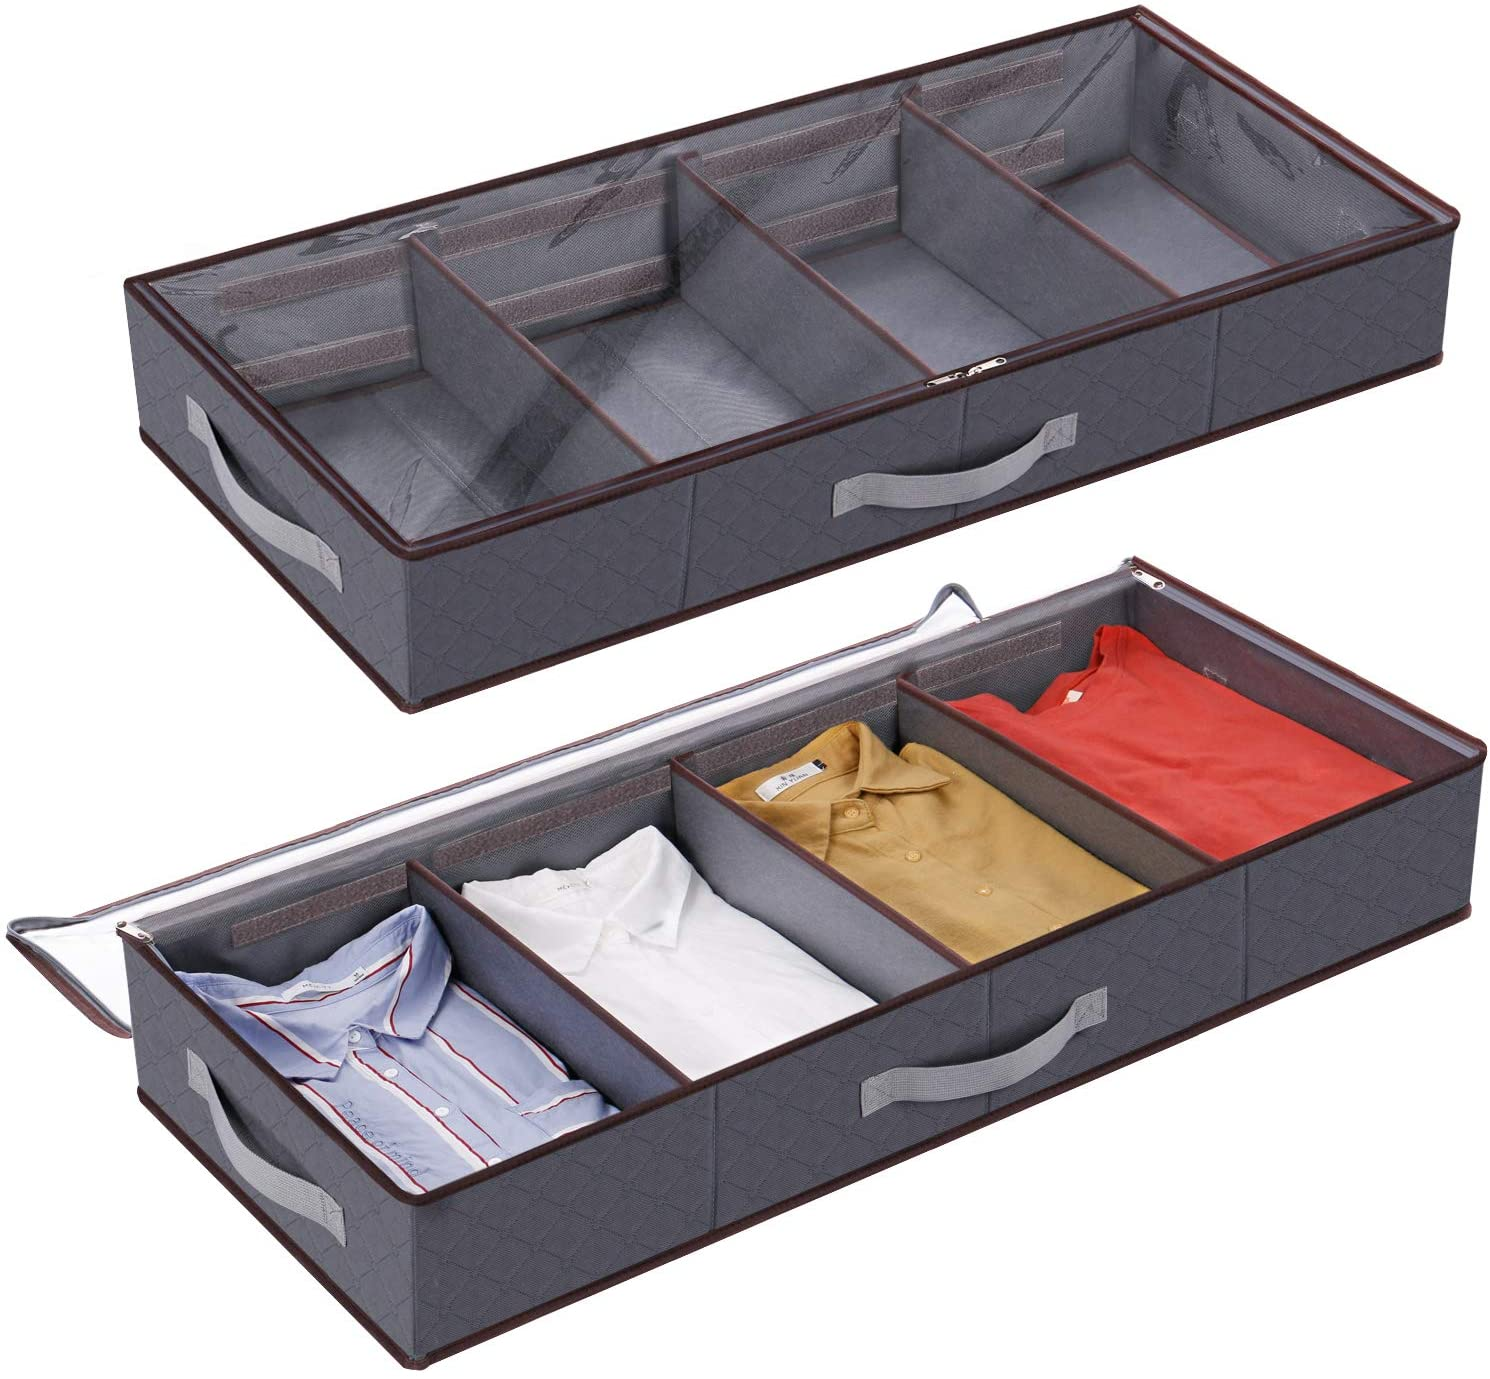 under bed storage hacks - Lifewit under bed clothes organizer